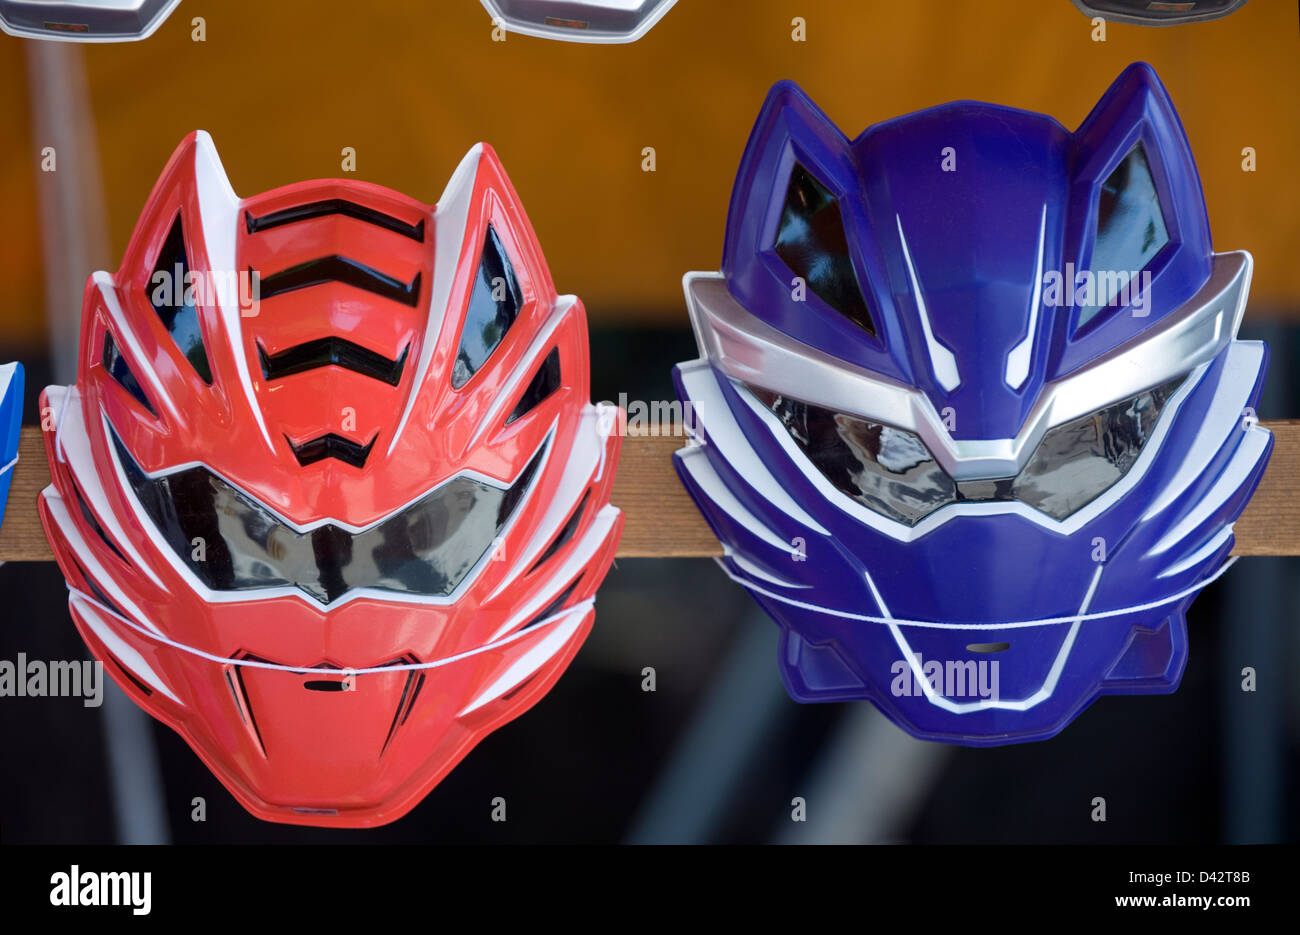 Children's plastic super hero masks in bright colors for sale at a festival stand in Japan. - Stock Image